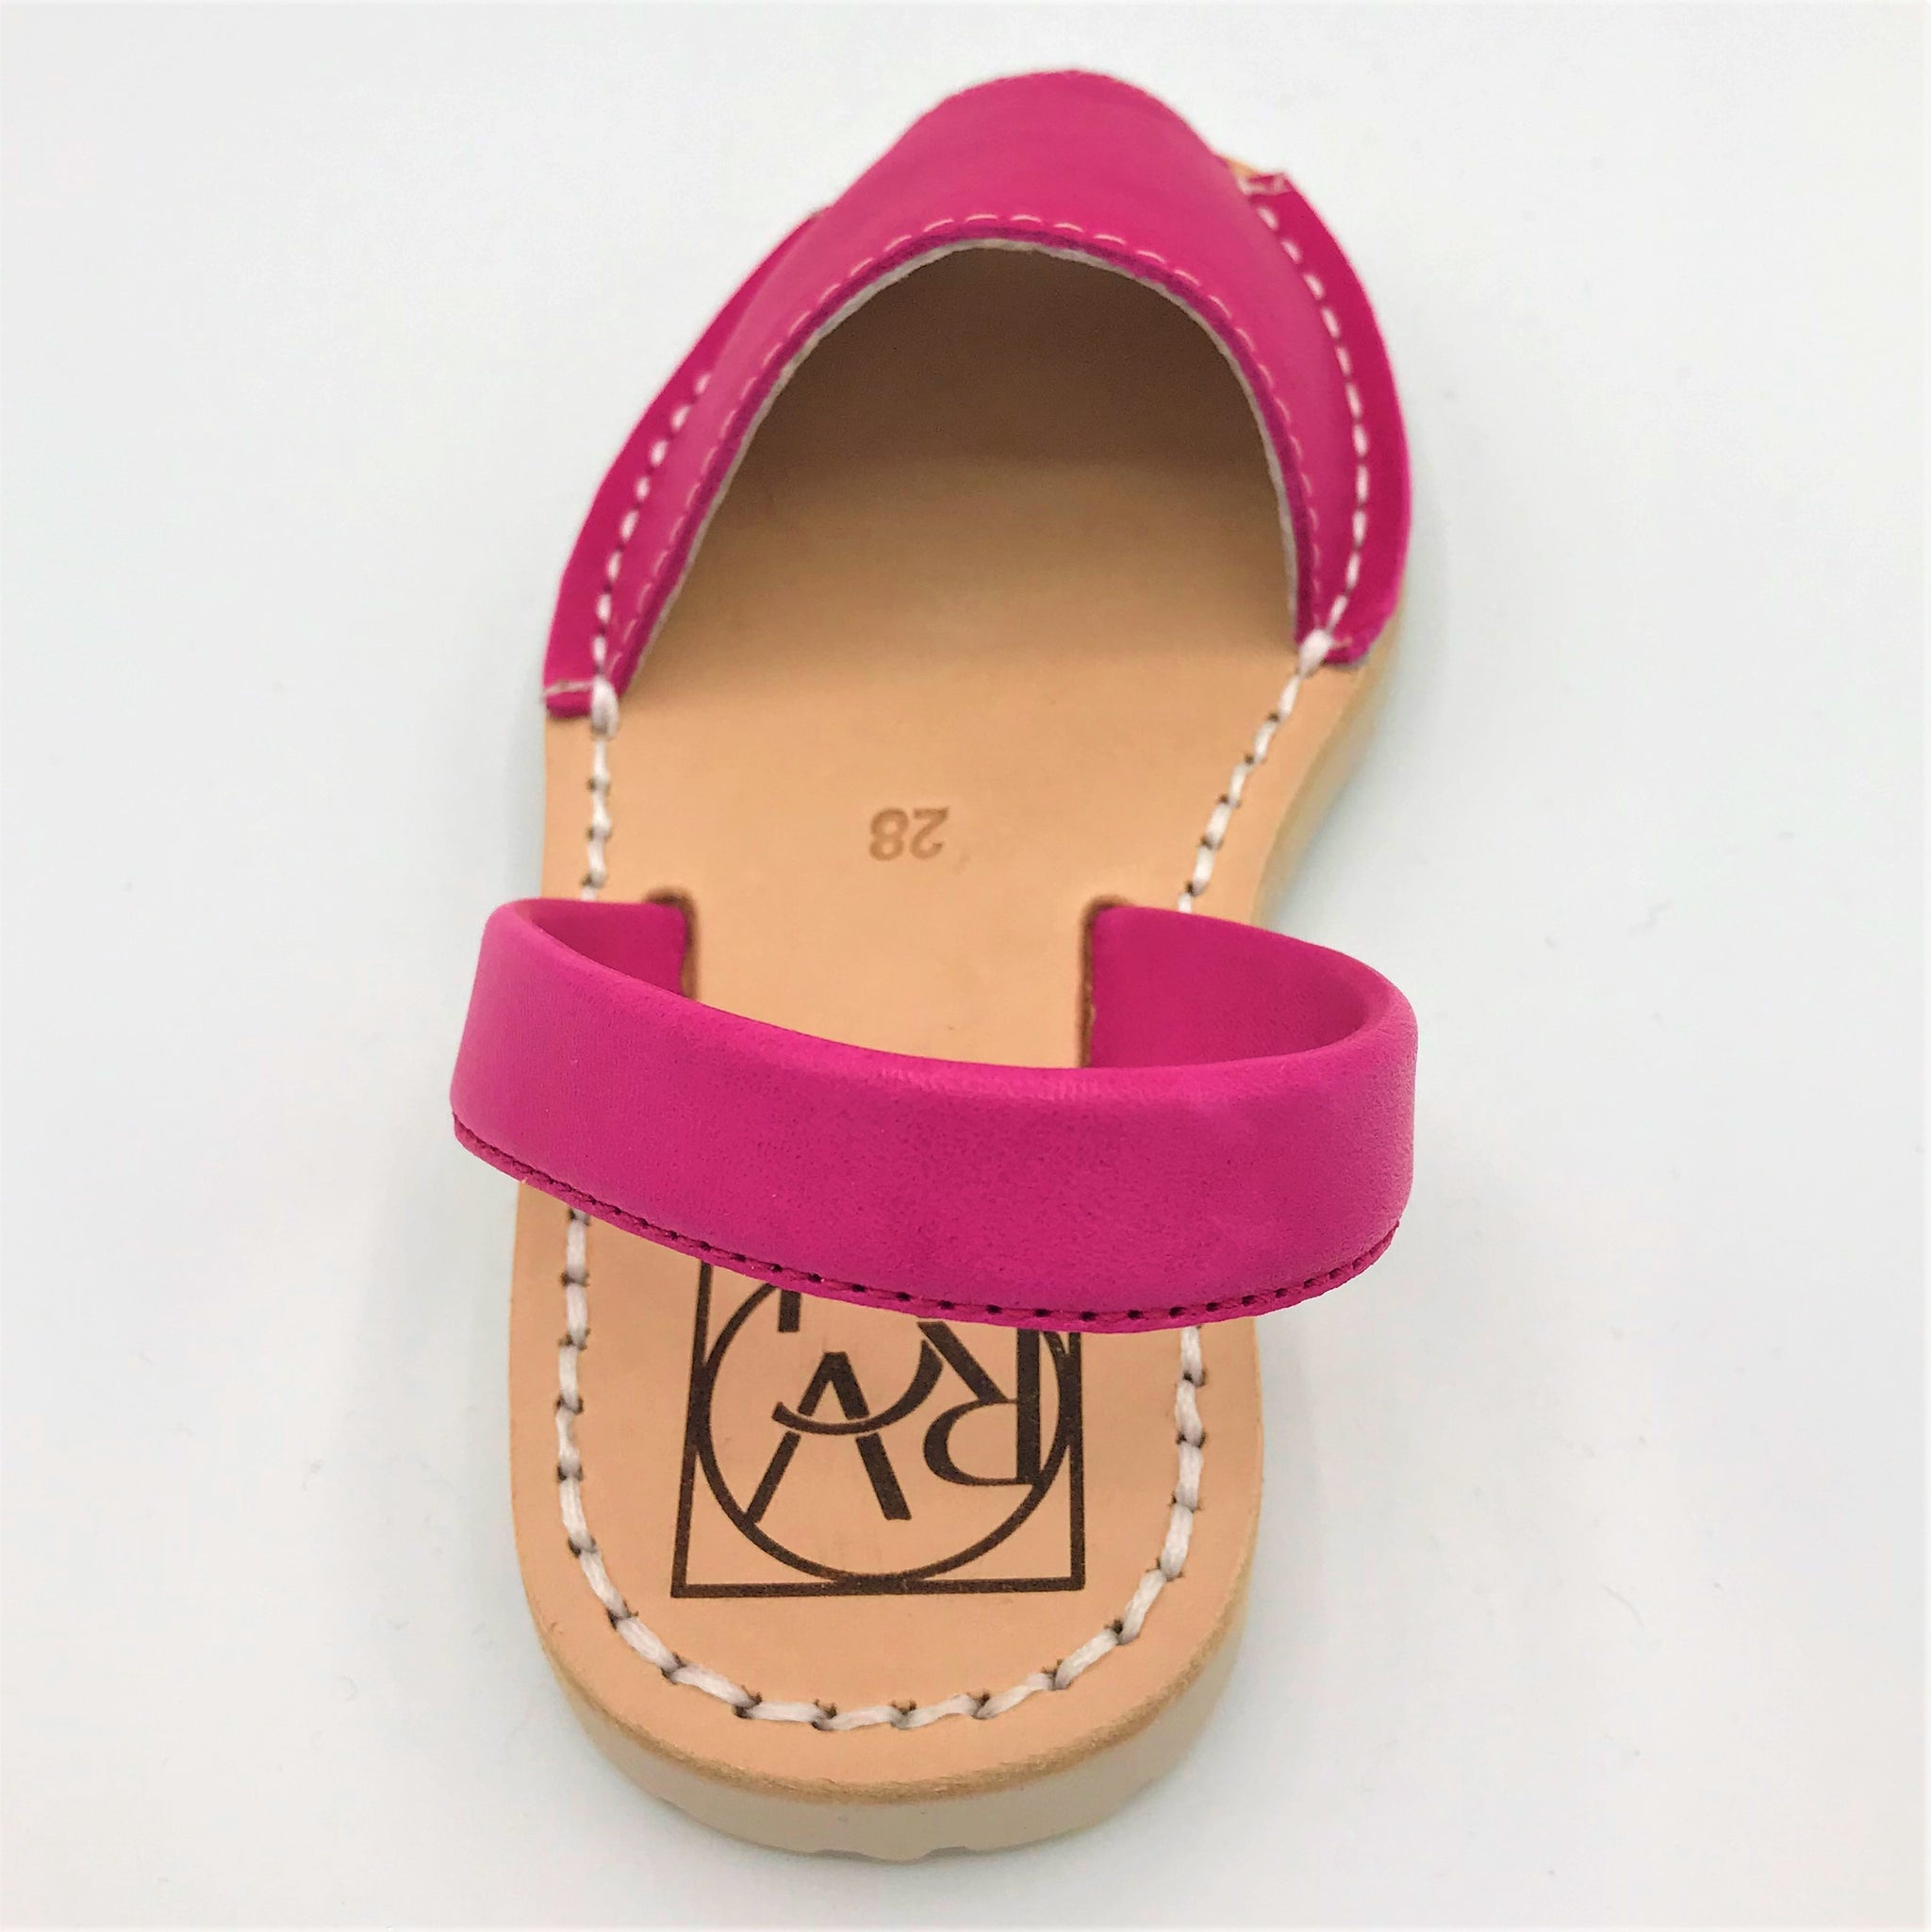 Hot Pink leather kids sandal from RGV Styled